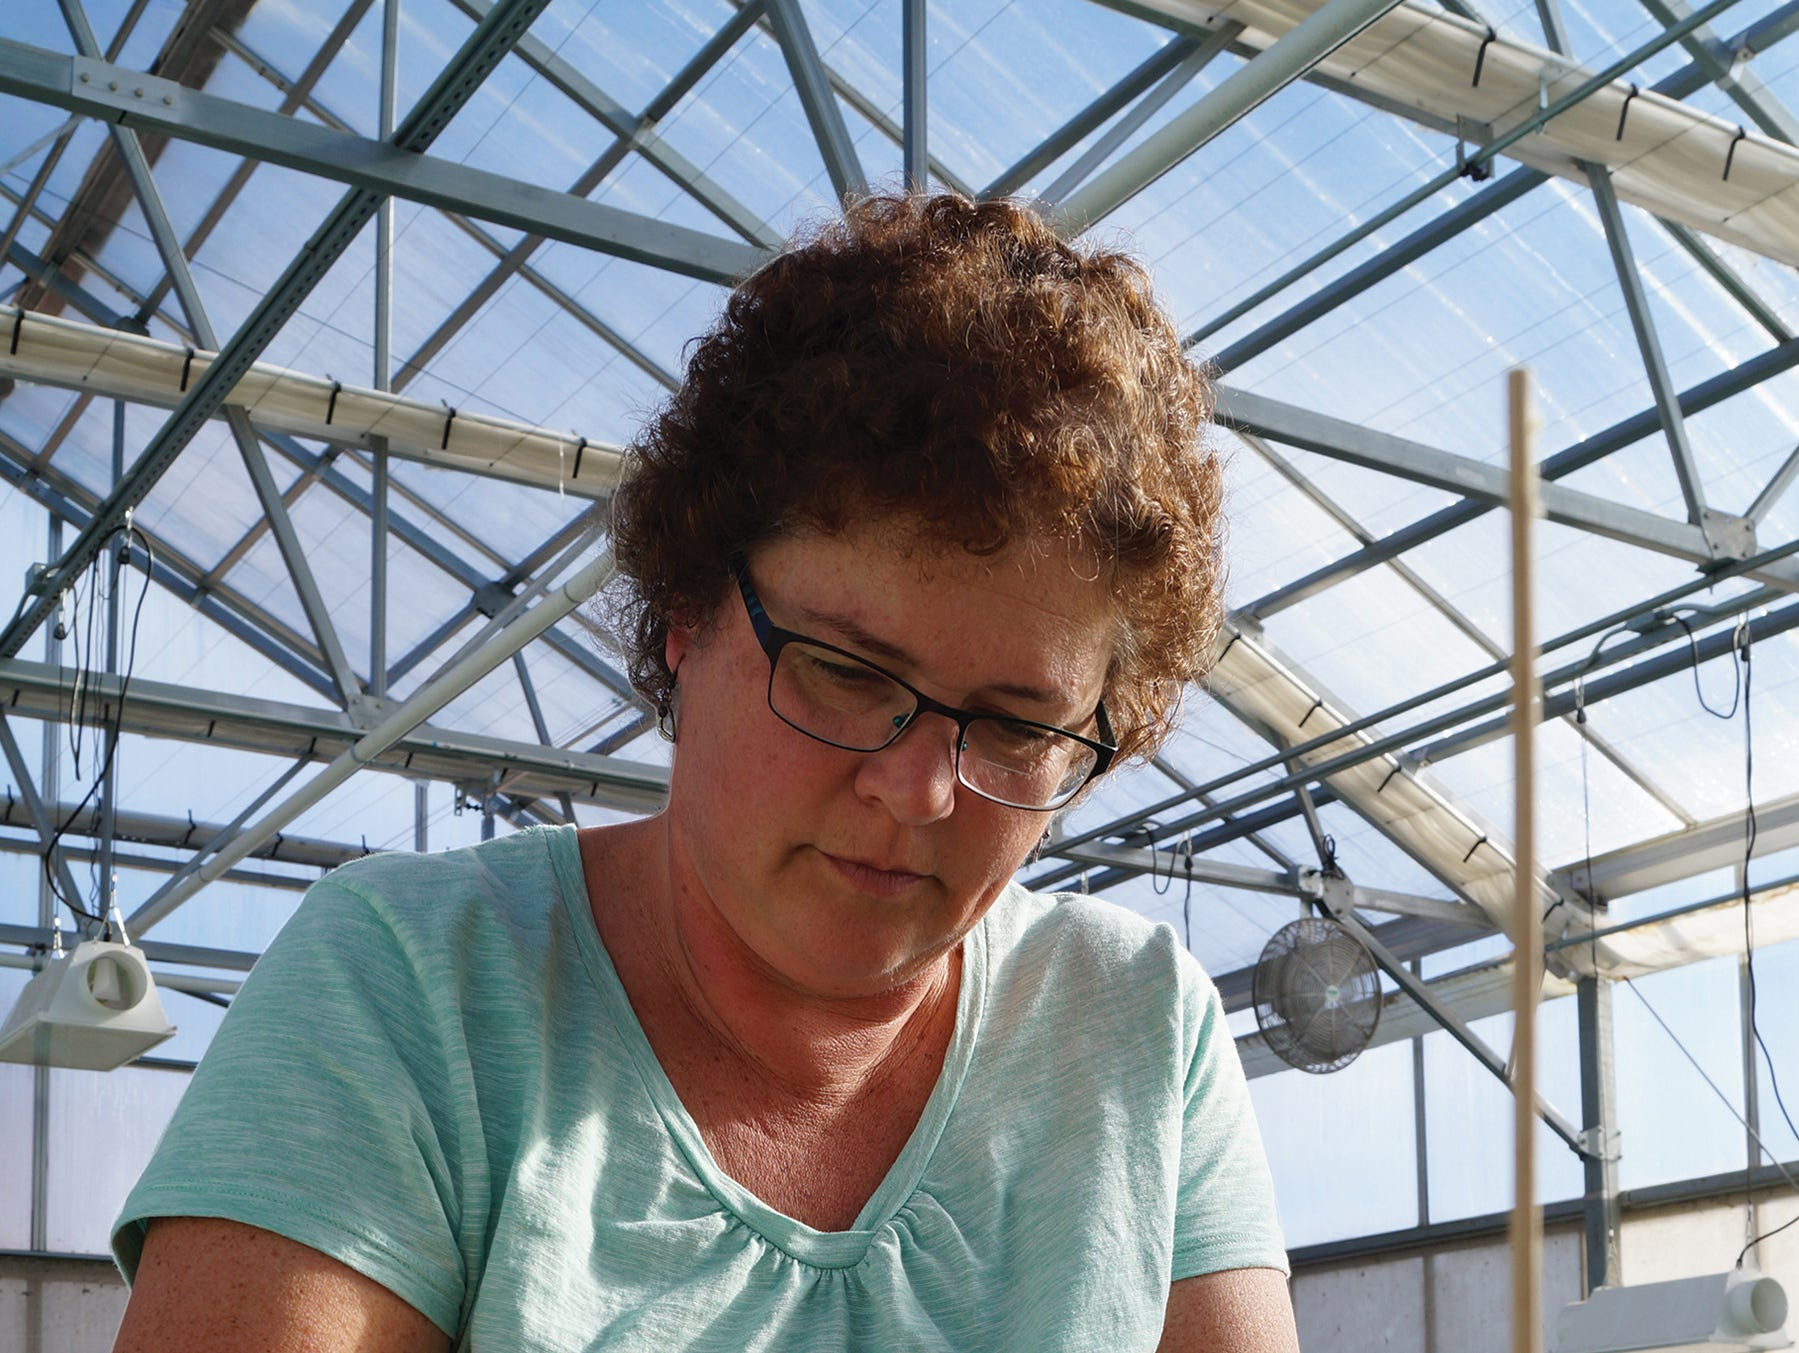 Lois Demmin has worked for Lake Orchard Farm since 2011. She works in the greenhouse and jokingly calls herself the plant relocation specialist.